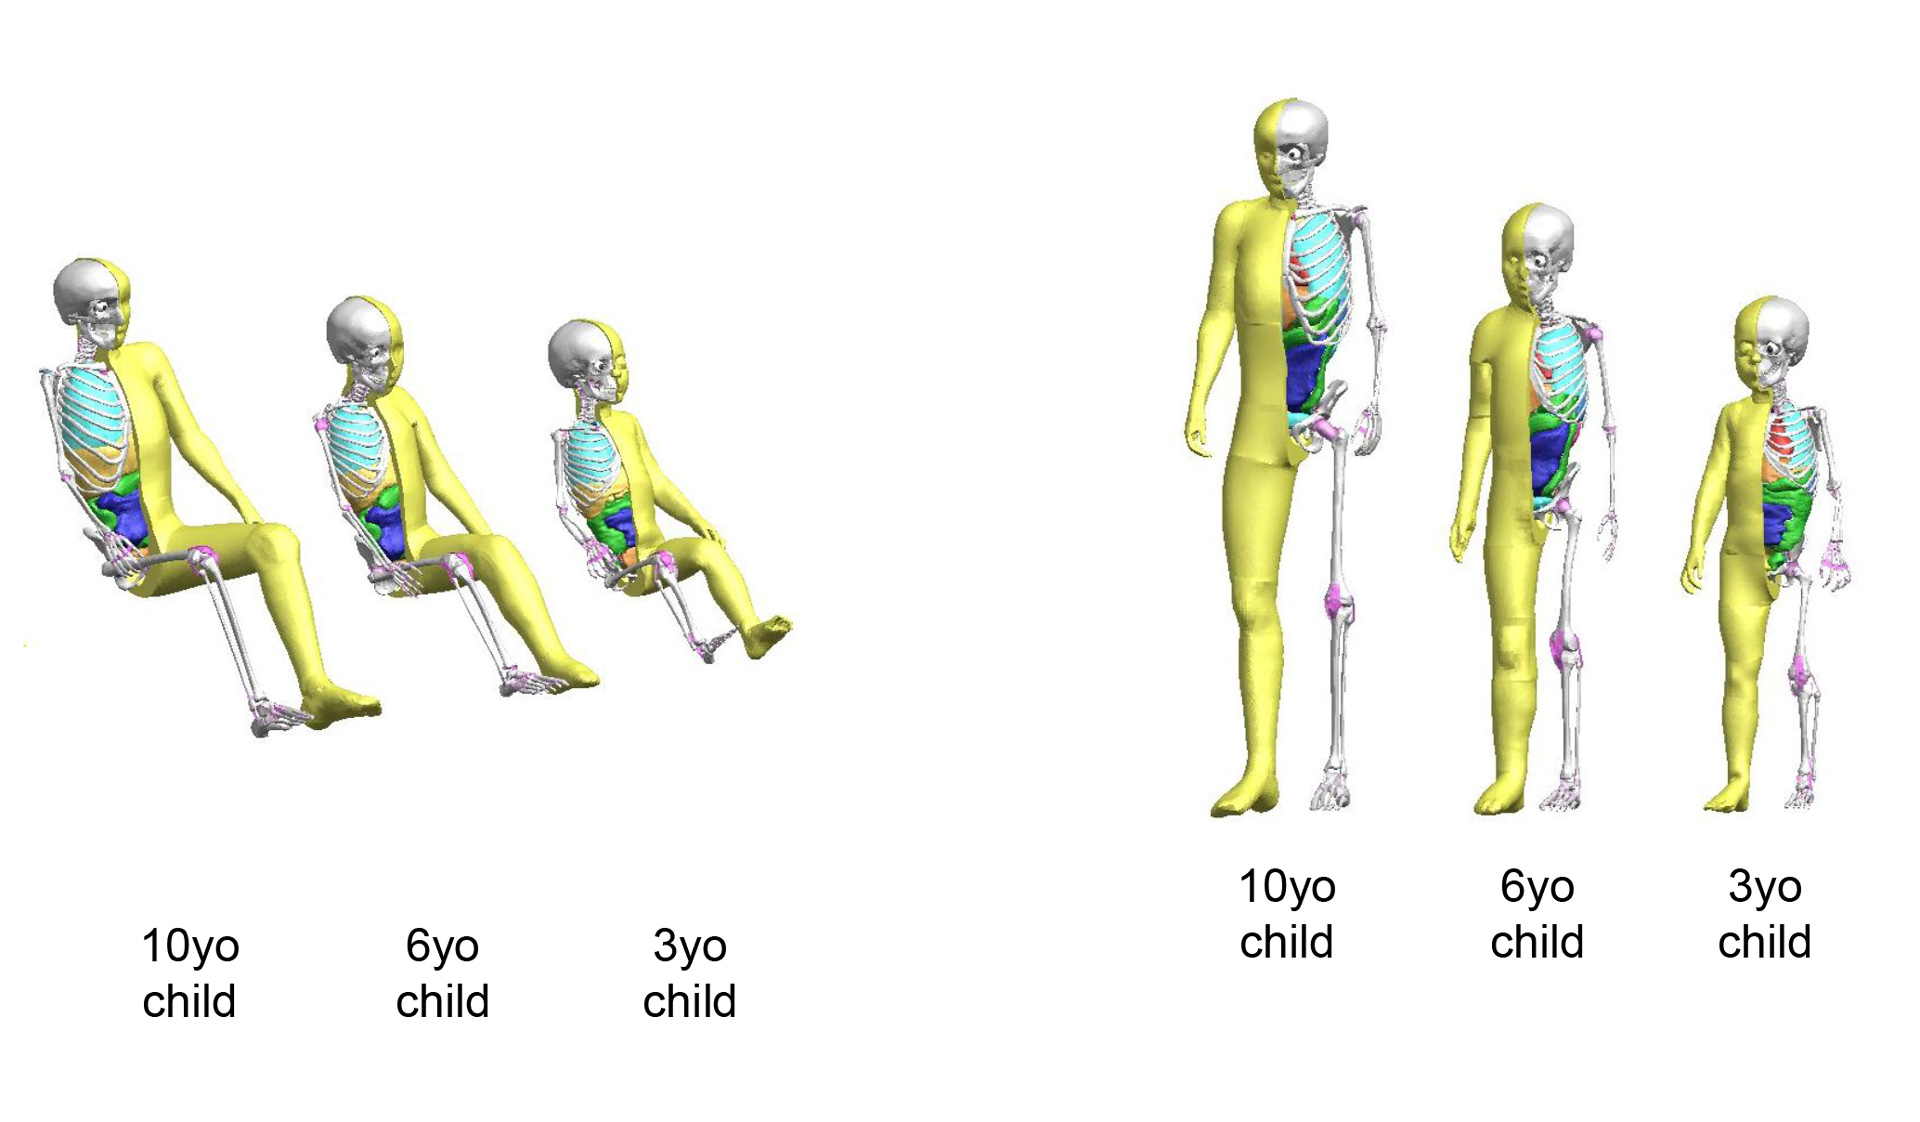 Child Models Now Available For Crash Test Simulation